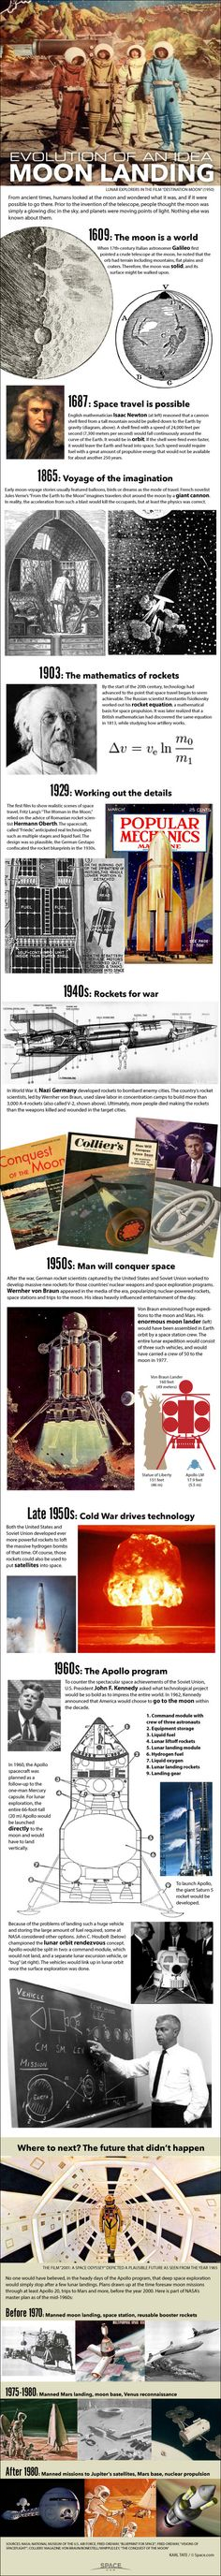 Destination Moon: The 350-Year History of Lunar Exploration (Infographic) By Karl Tate, Infographics Artist | July 16, 2014 1